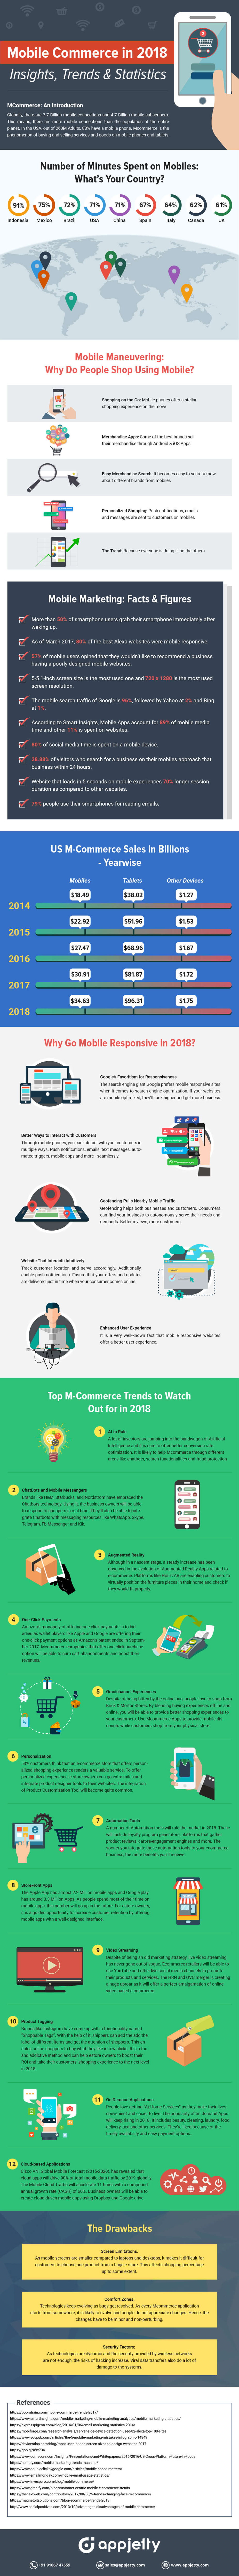 Mobile-Commerce-in-2018-Insights-Trends-Statistics-infographic-plaza